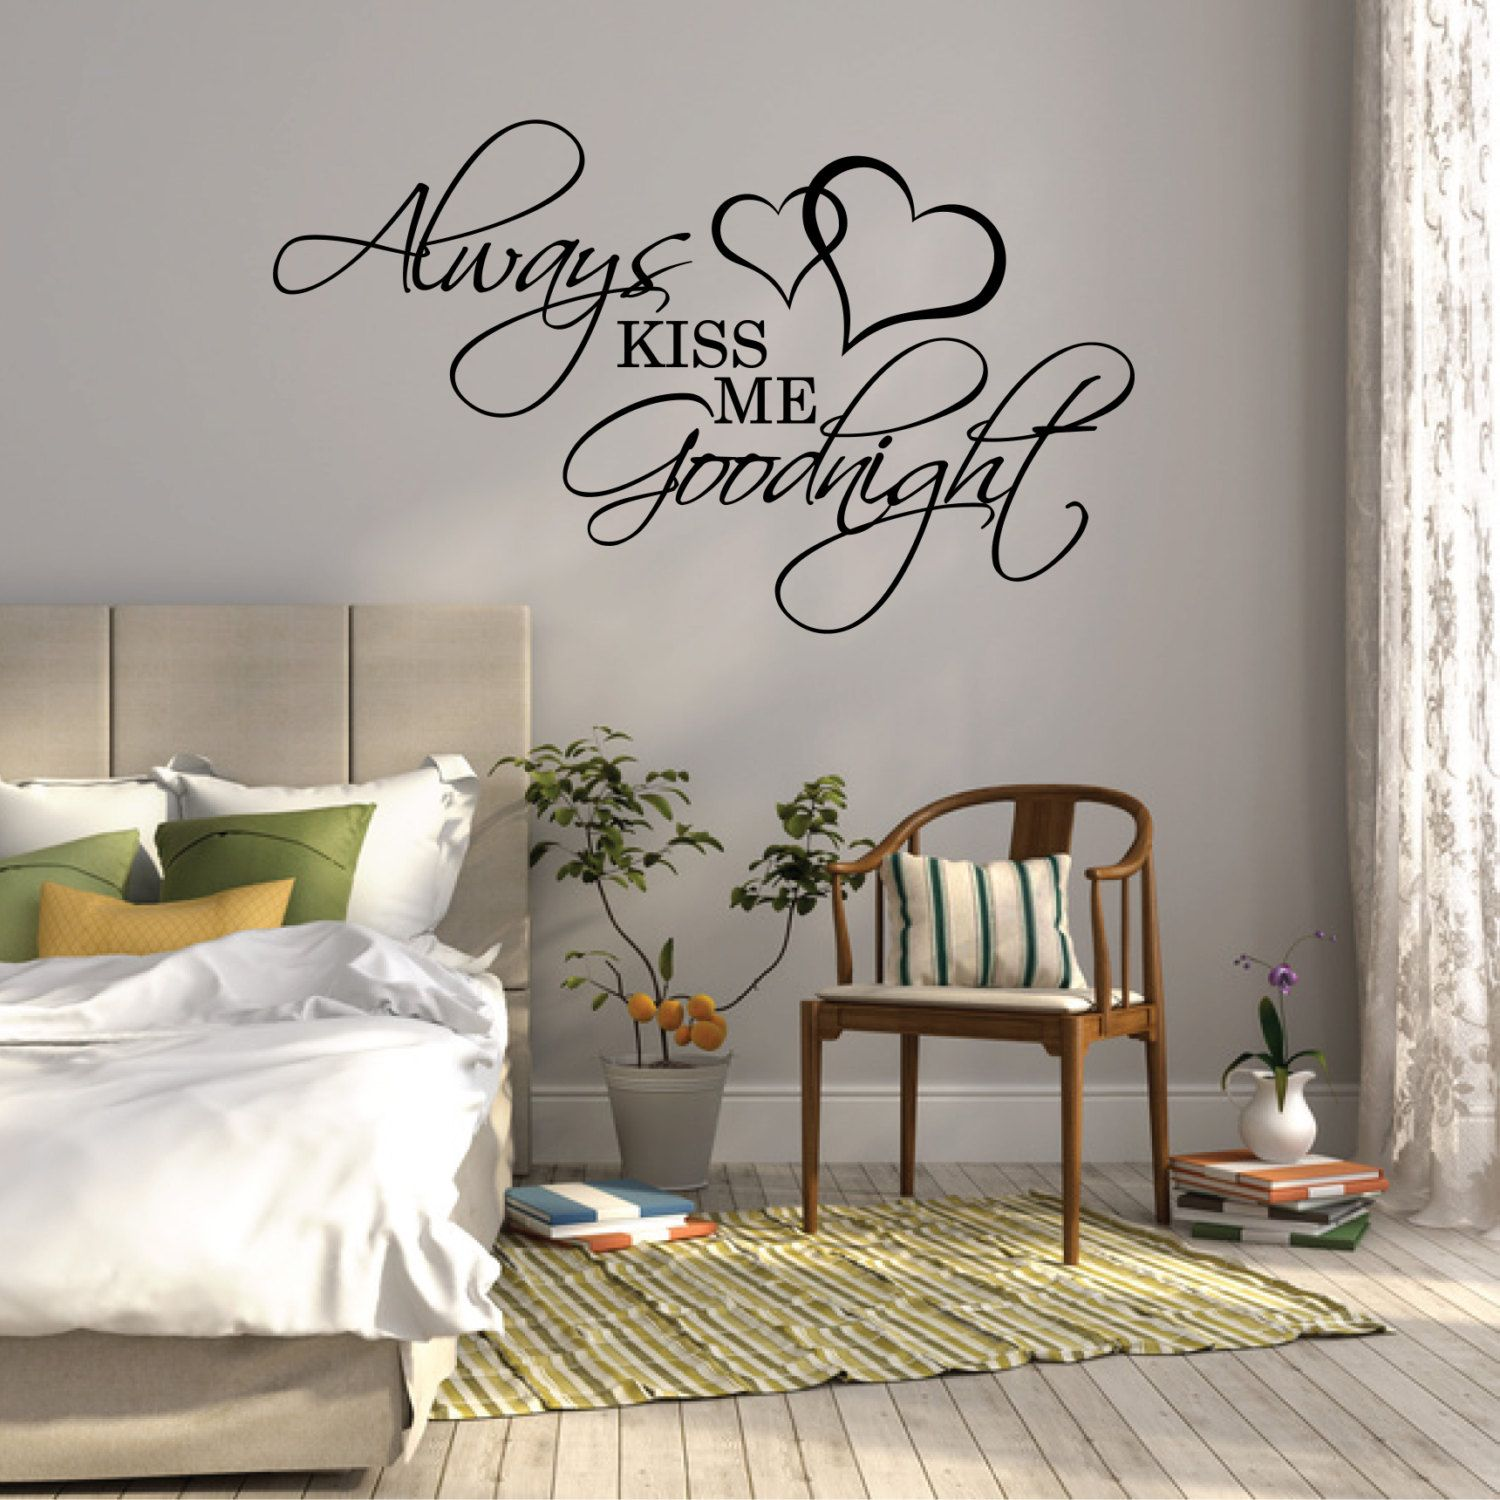 Wall sticker quote always kiss me goodnight over bed for Bedroom wall art